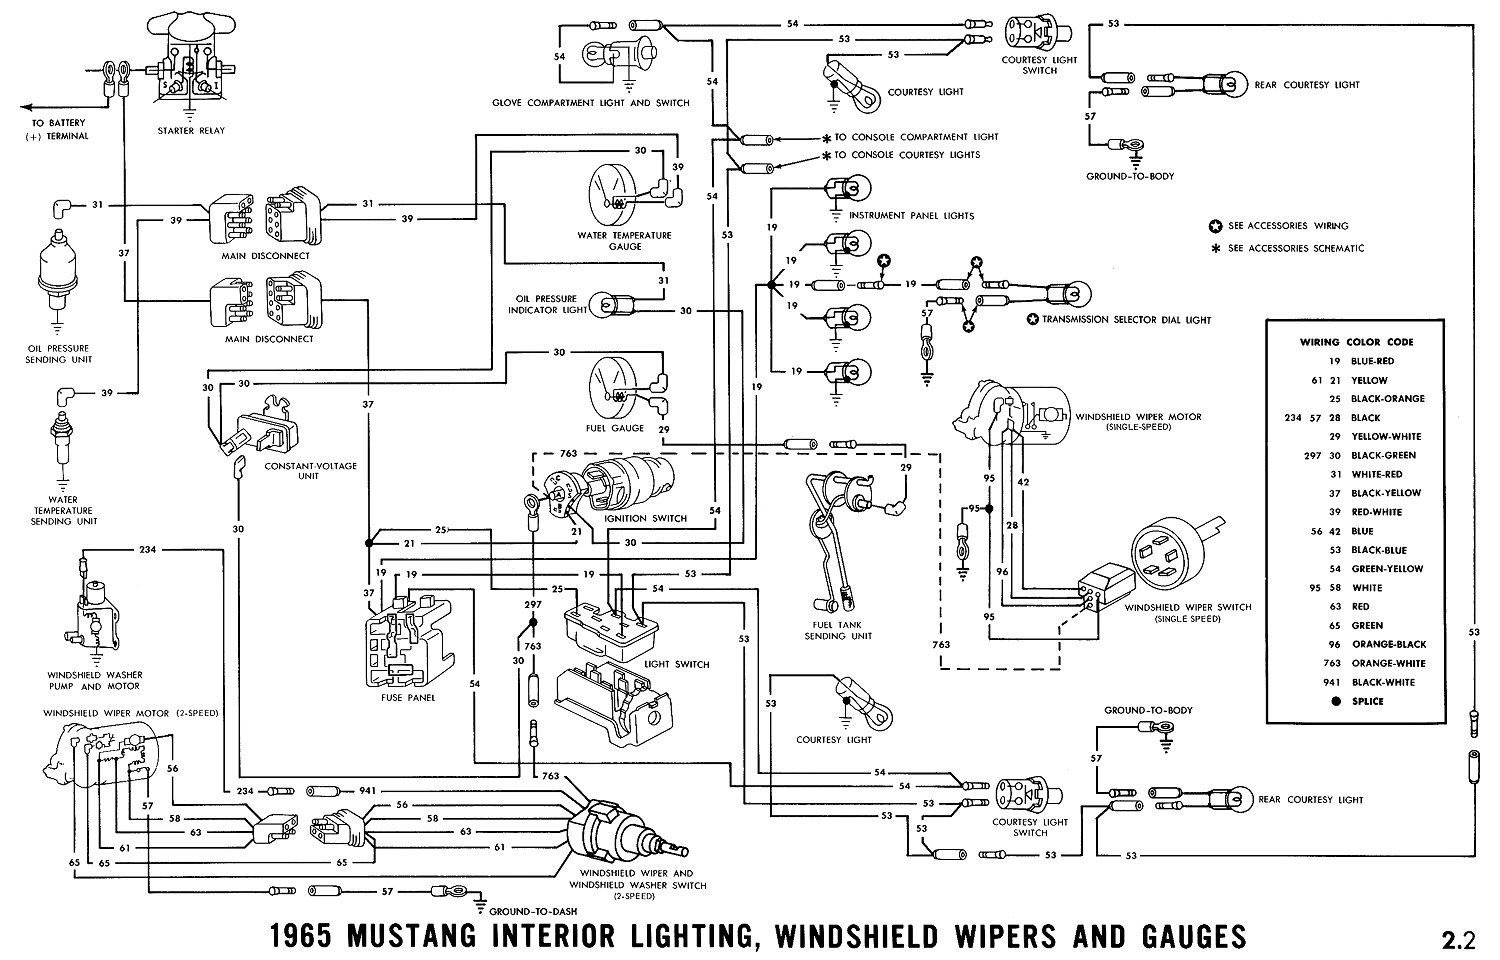 1965 mustang wiring diagrams average joe restoration. Black Bedroom Furniture Sets. Home Design Ideas